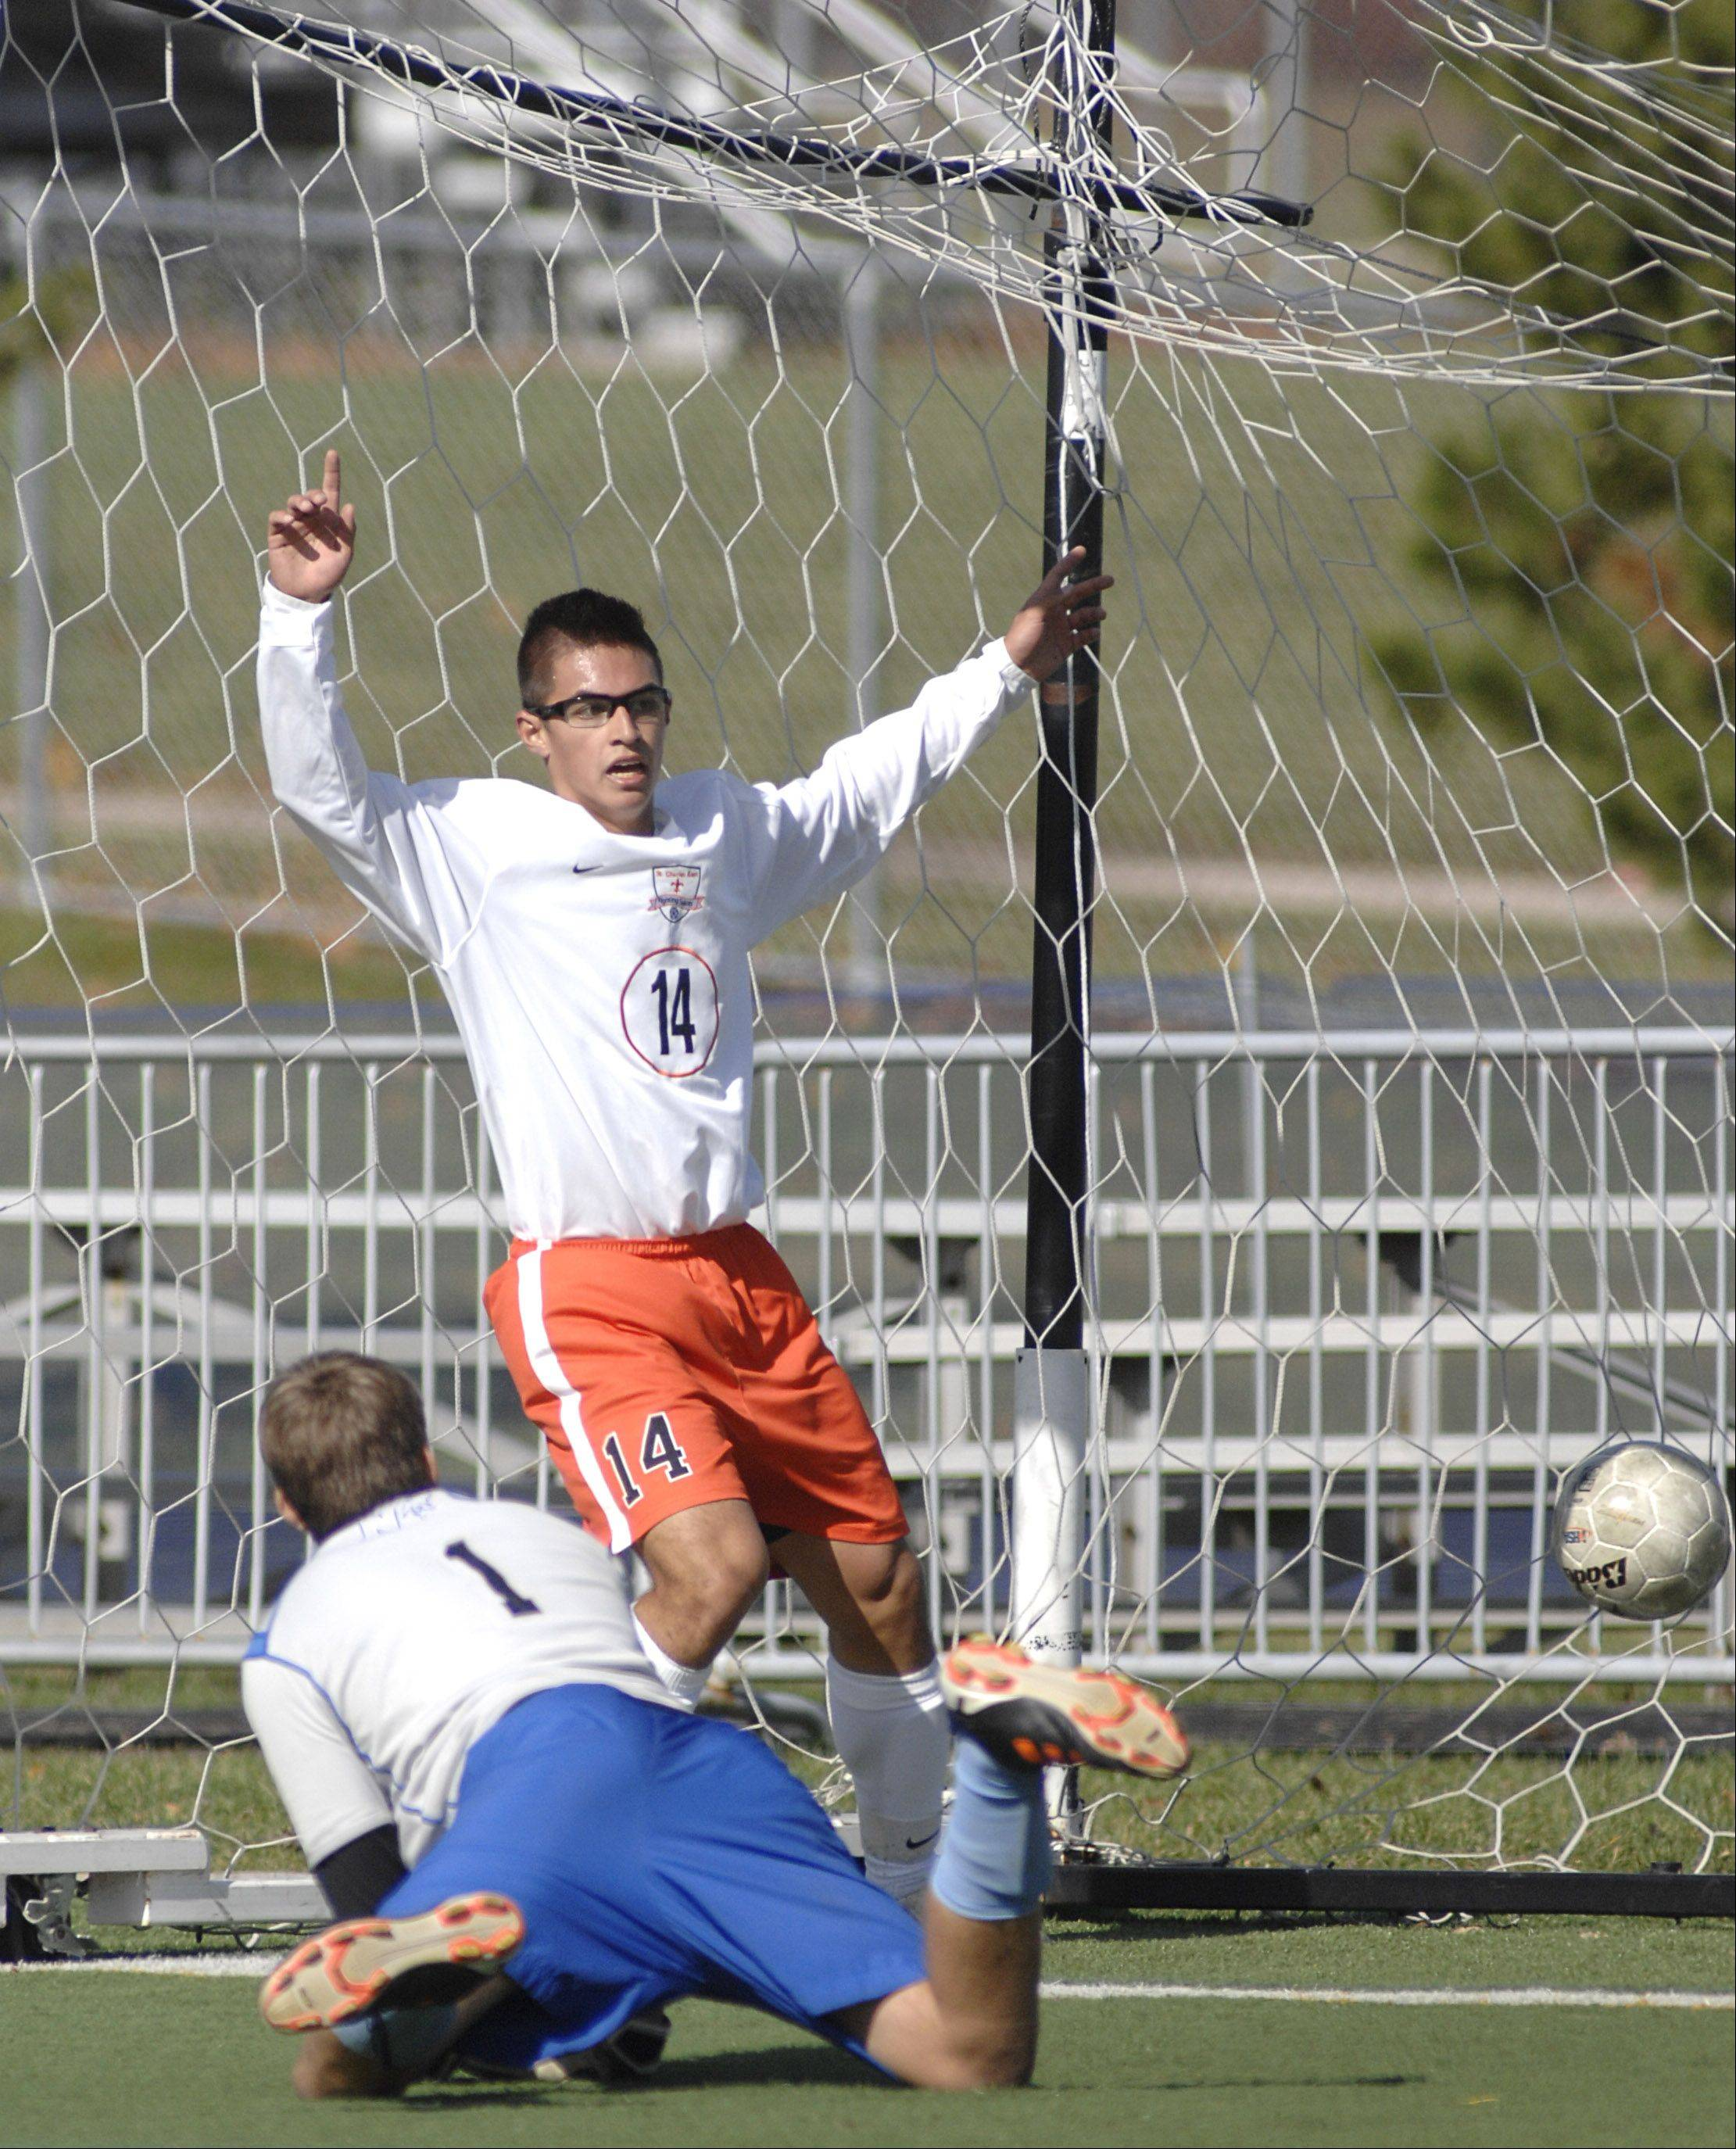 St. Charles East's Zach Manibog celebrates the goal made by teammate Andrew Shone across the field before St. Charles North goalie Hansen Hagemann even hits the ground in the final seconds of the first half on Saturday, October 20.